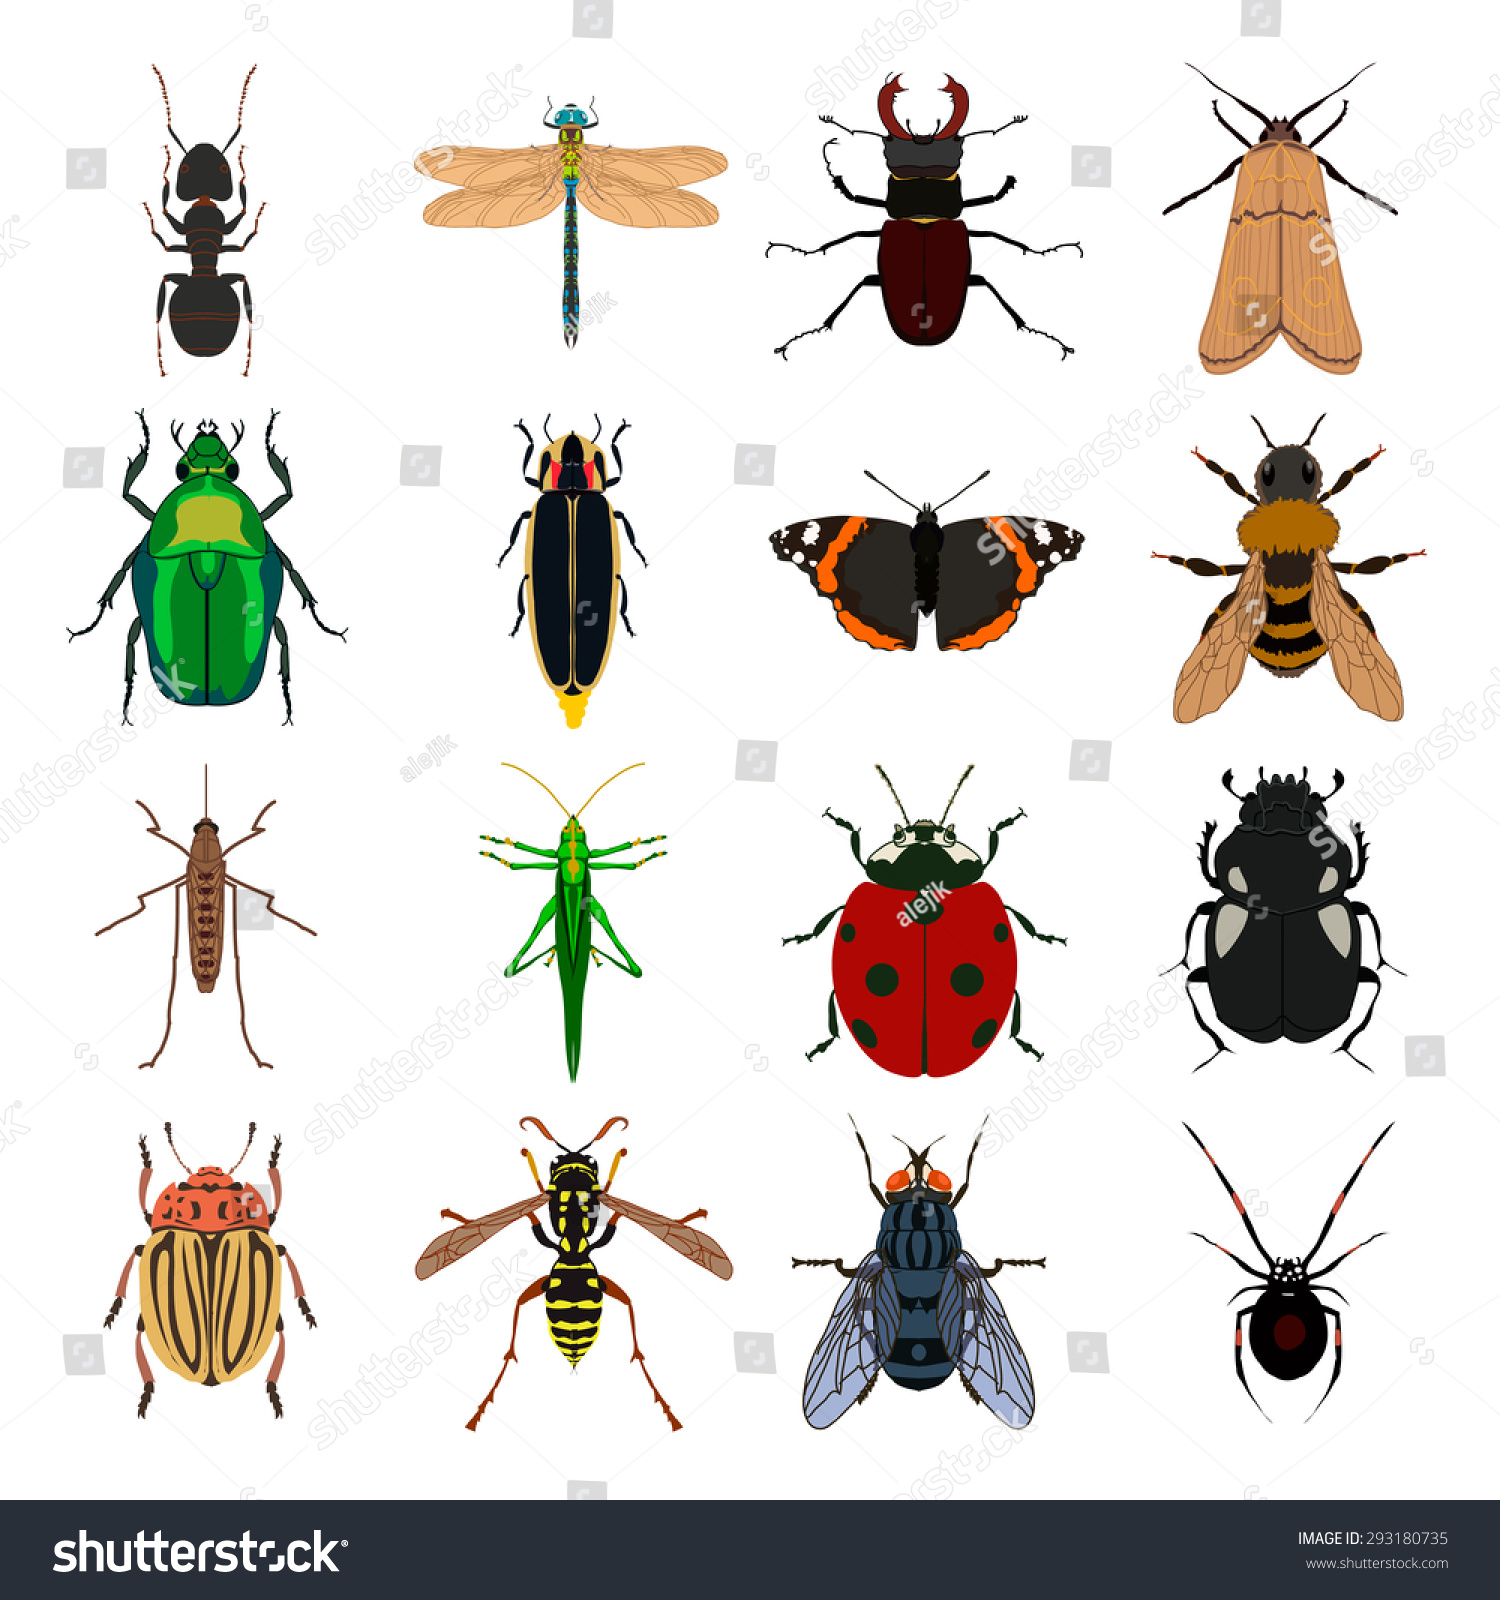 Worksheet Butterfly Beetle insect vector set butterfly wasp tick ant dragonfly beetle save to a lightbox